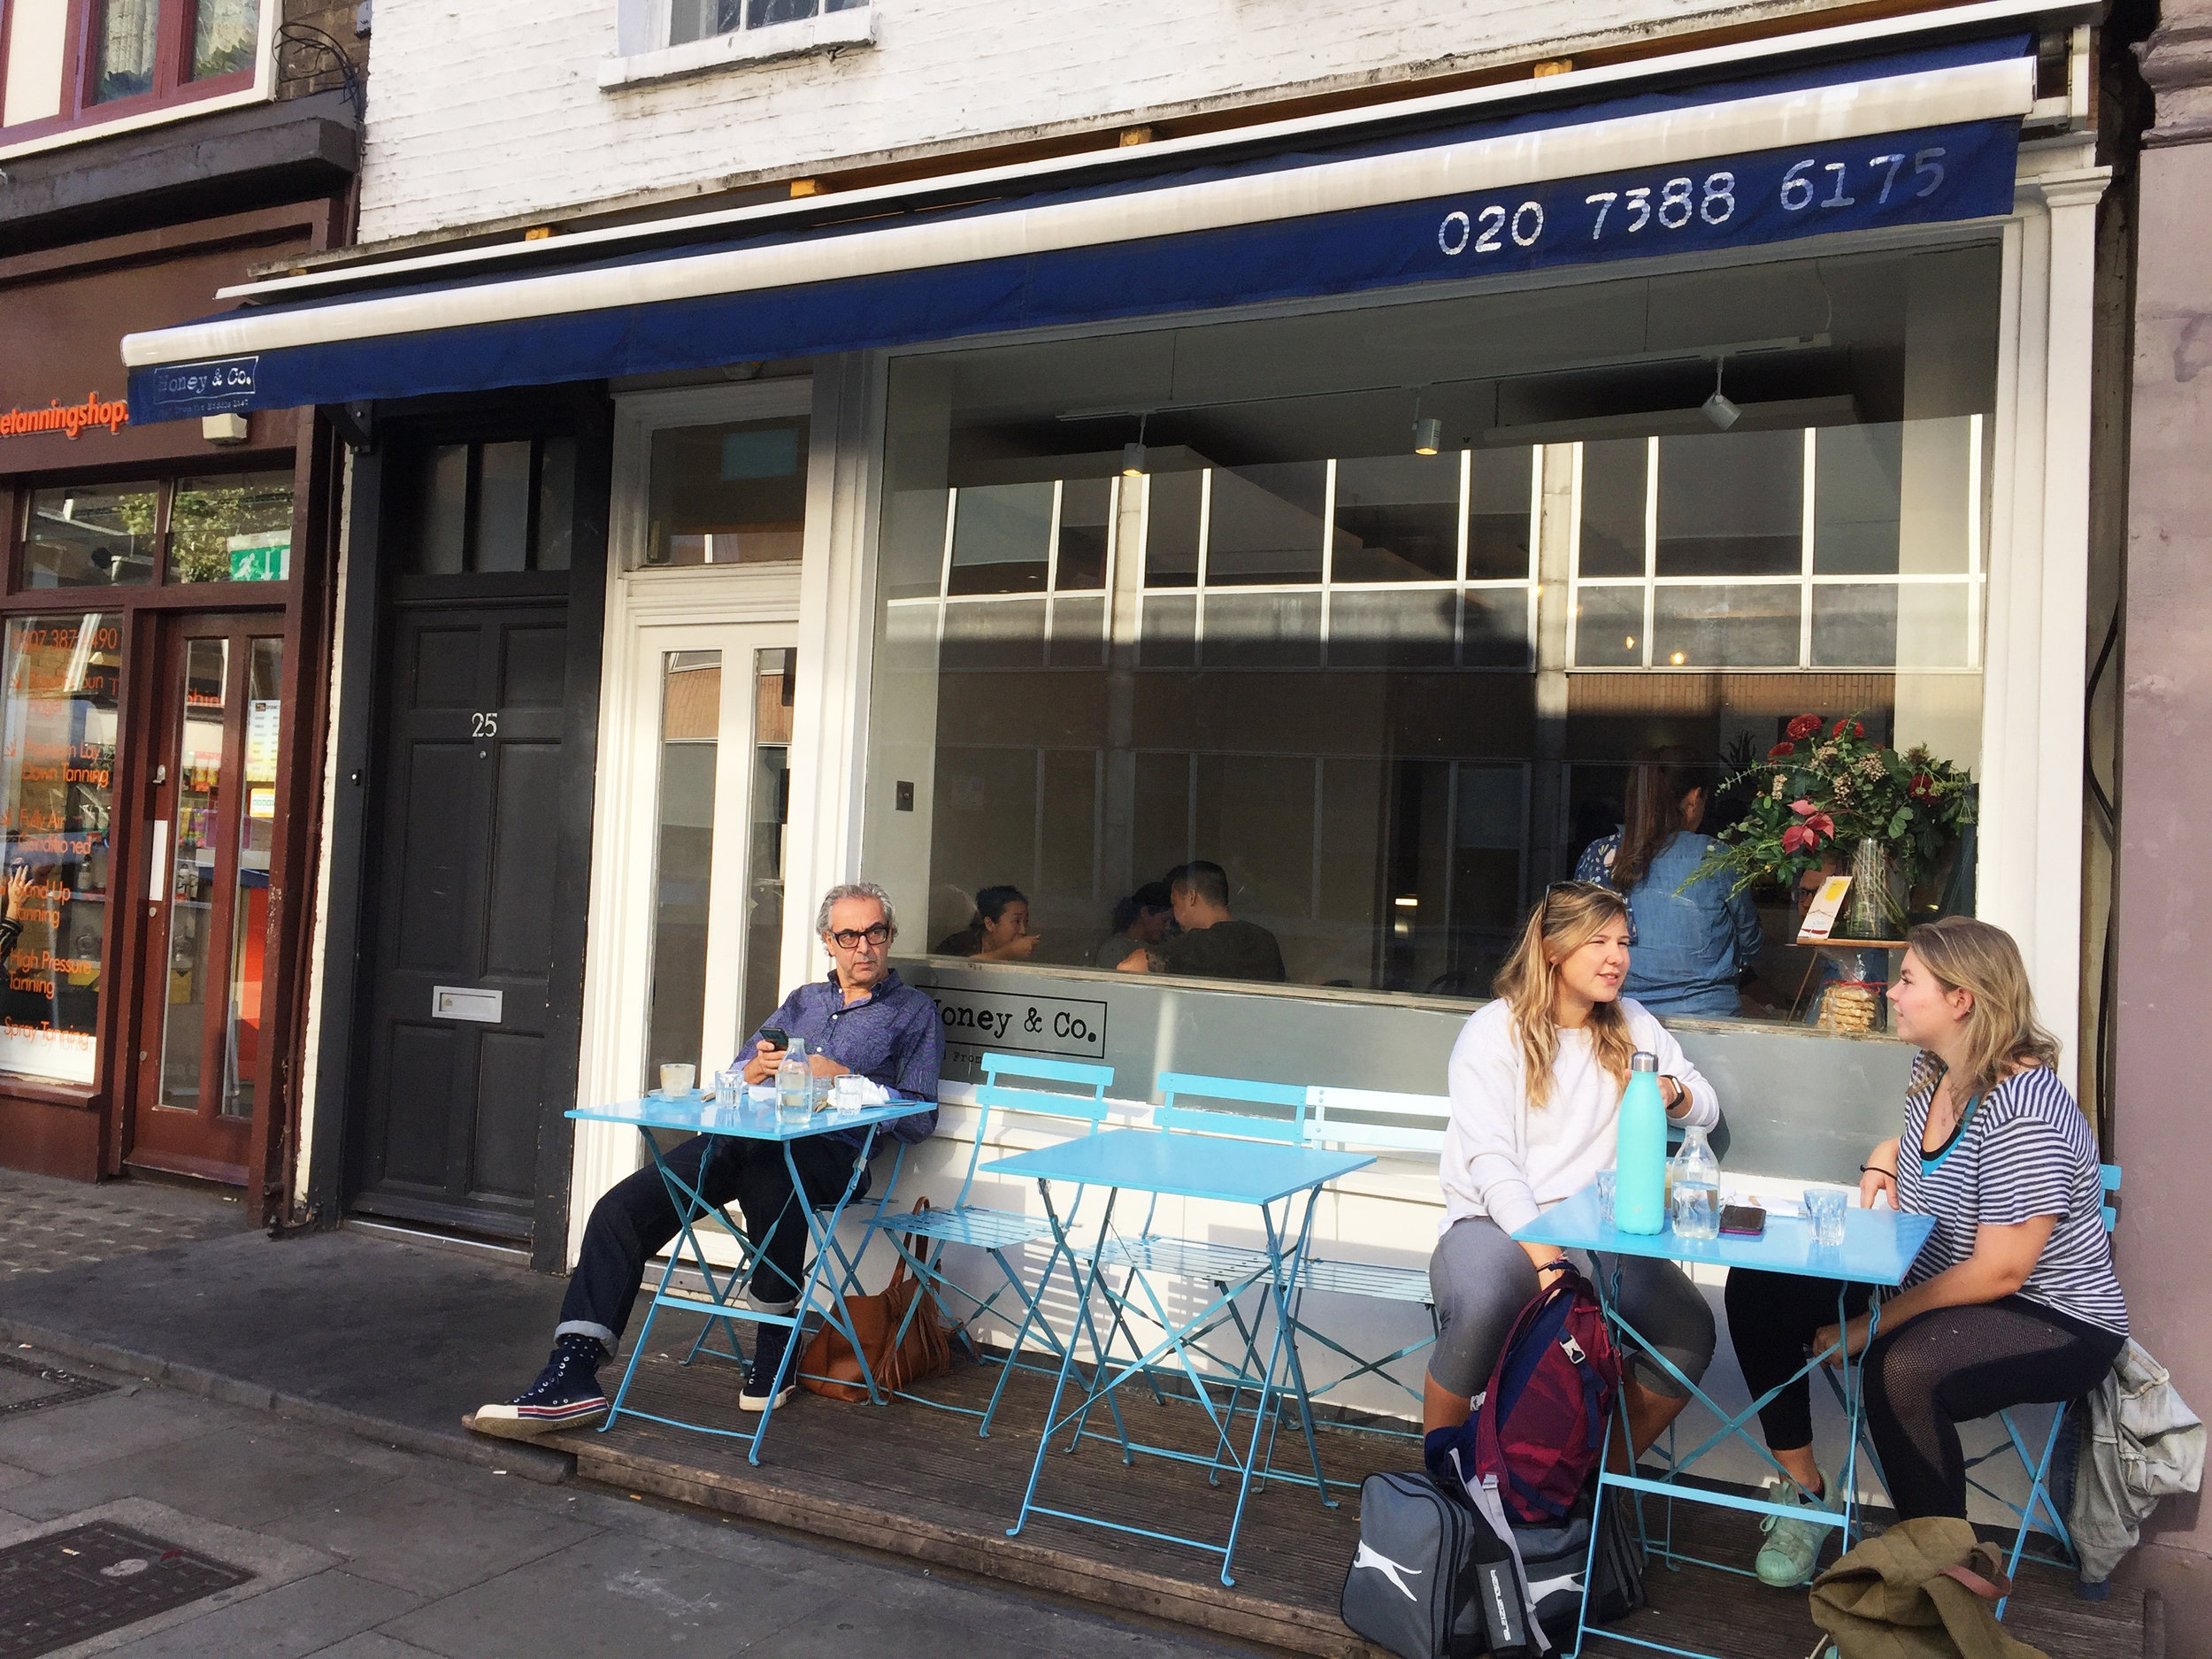 Guests enjoying lunch at Honey & Co.